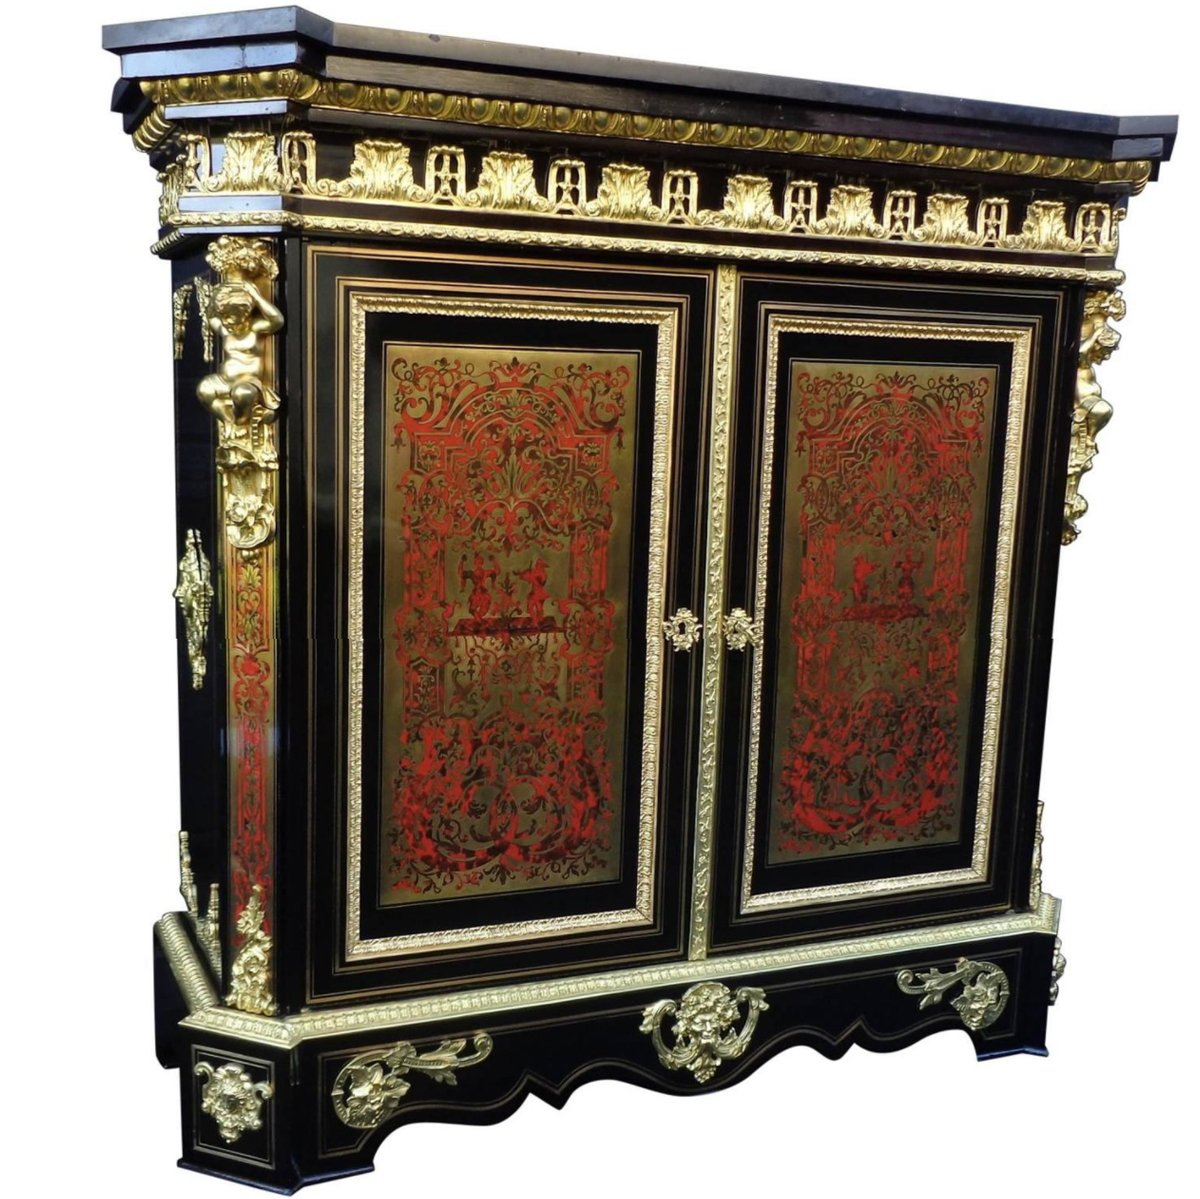 meuble d 39 appui en marqueterie boulle d 39 poque napol on iii xixe si cle. Black Bedroom Furniture Sets. Home Design Ideas